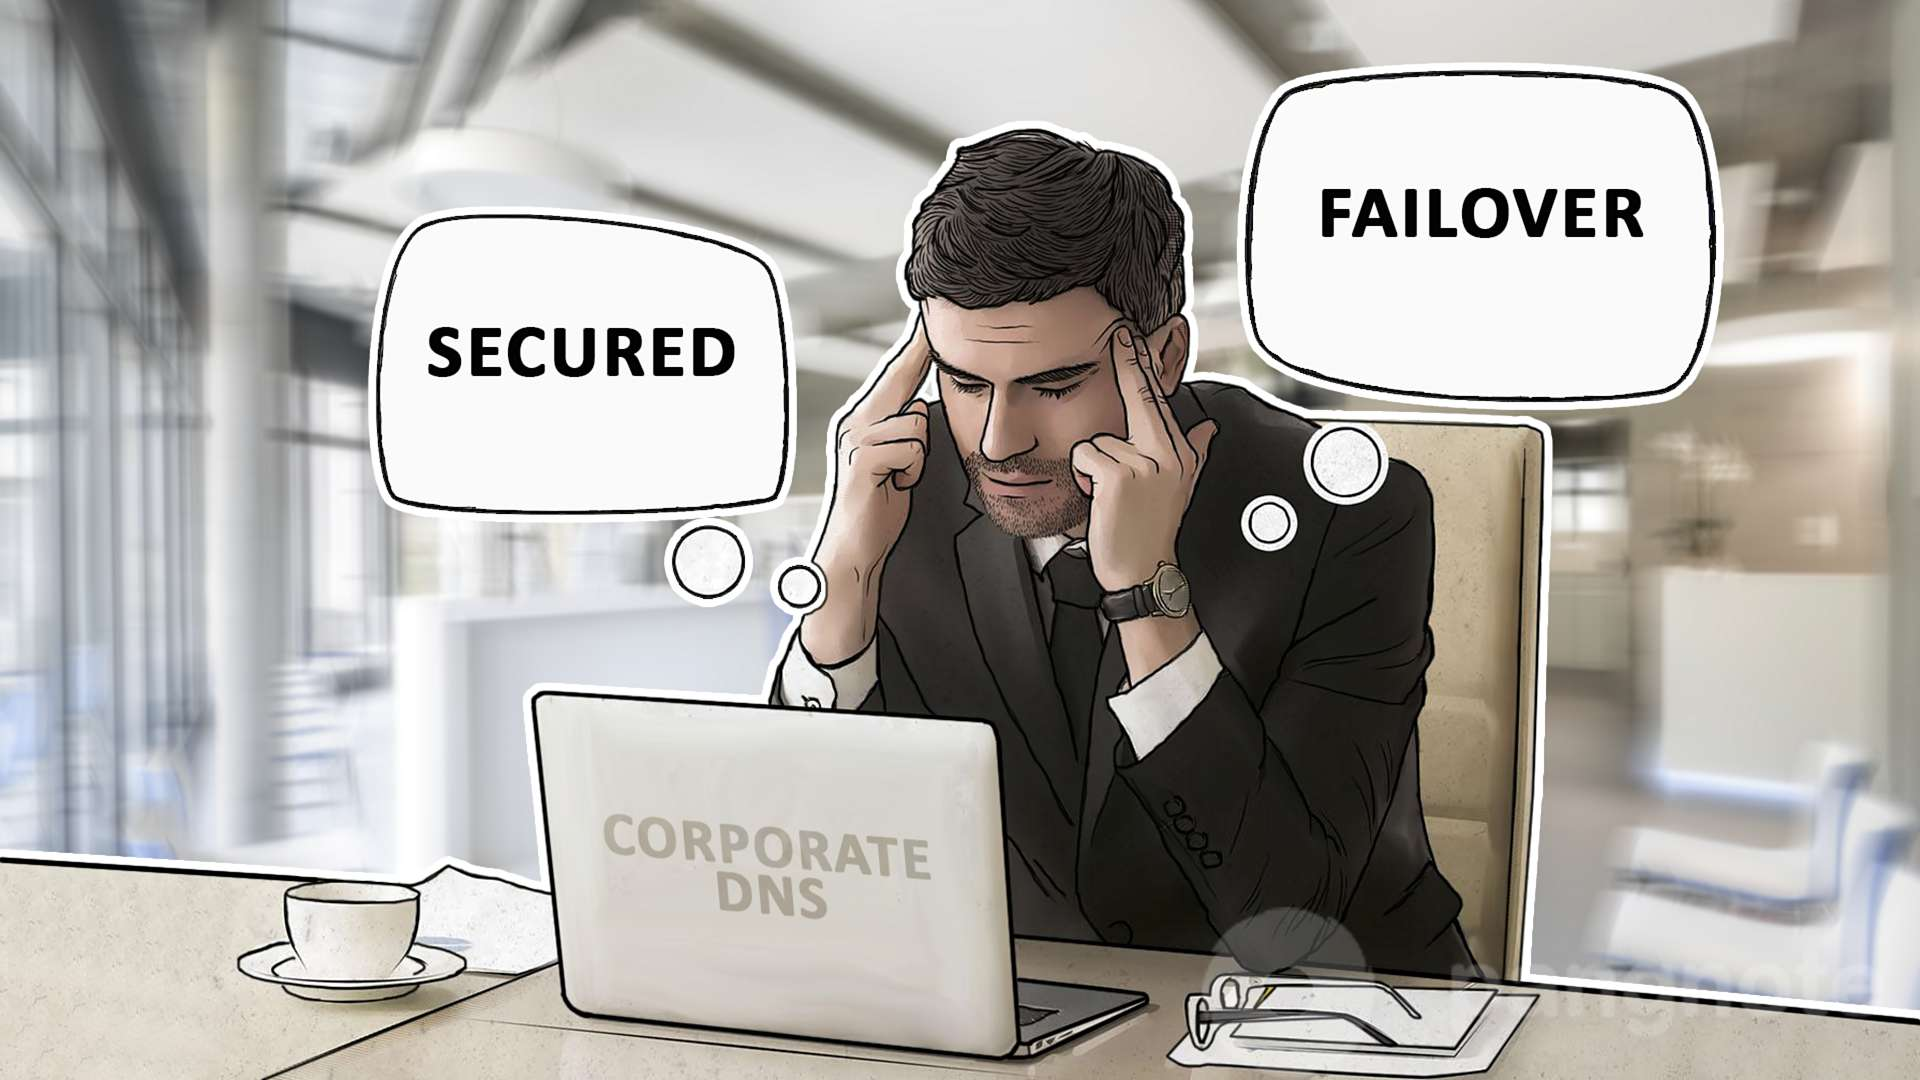 How to make a corporate DNS secured and failover?